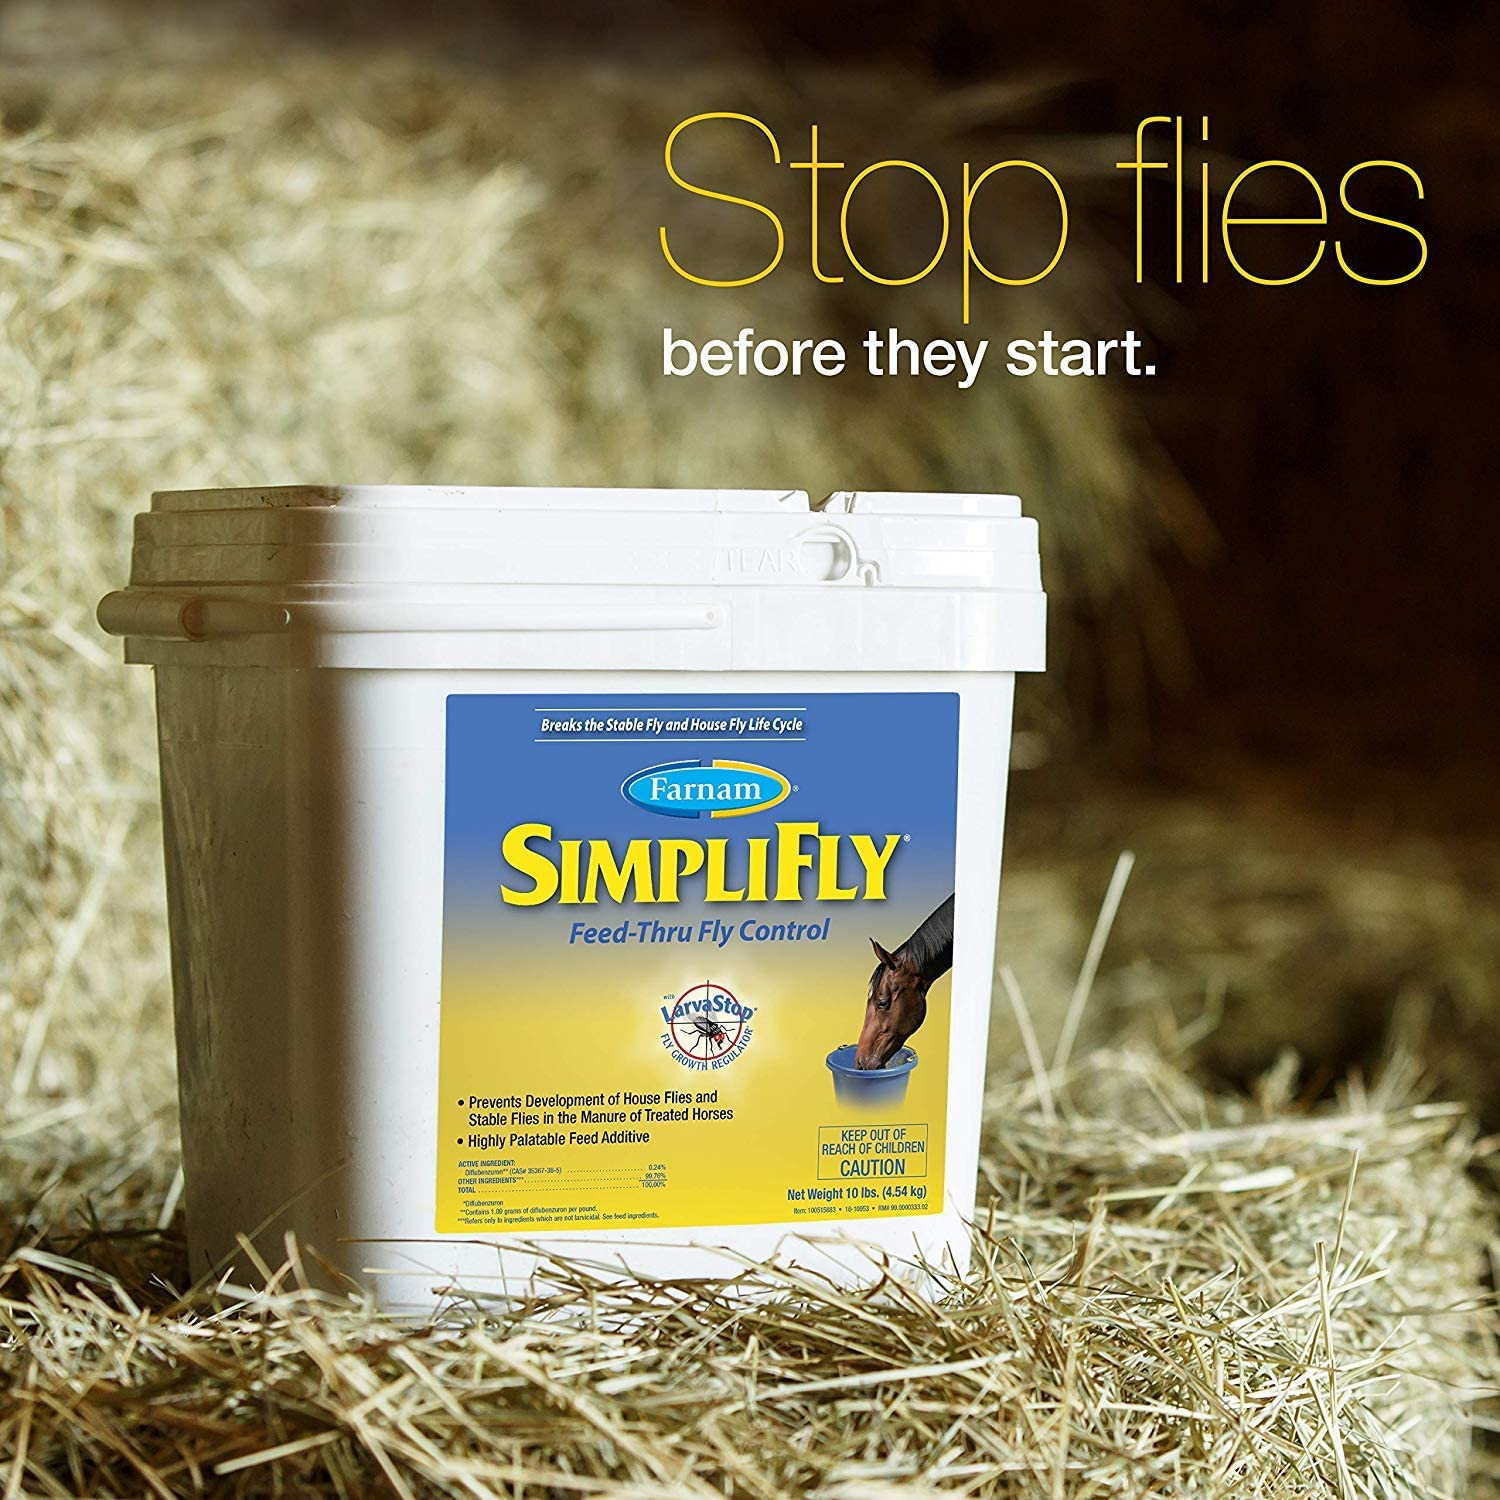 B000I1PIEO Farnam SimpliFly Feed-Thru Fly Control for Horses, Breaks and Prevents the Fly Life Cycle, 10 pound 81zrpVzF9vL.SL1500_